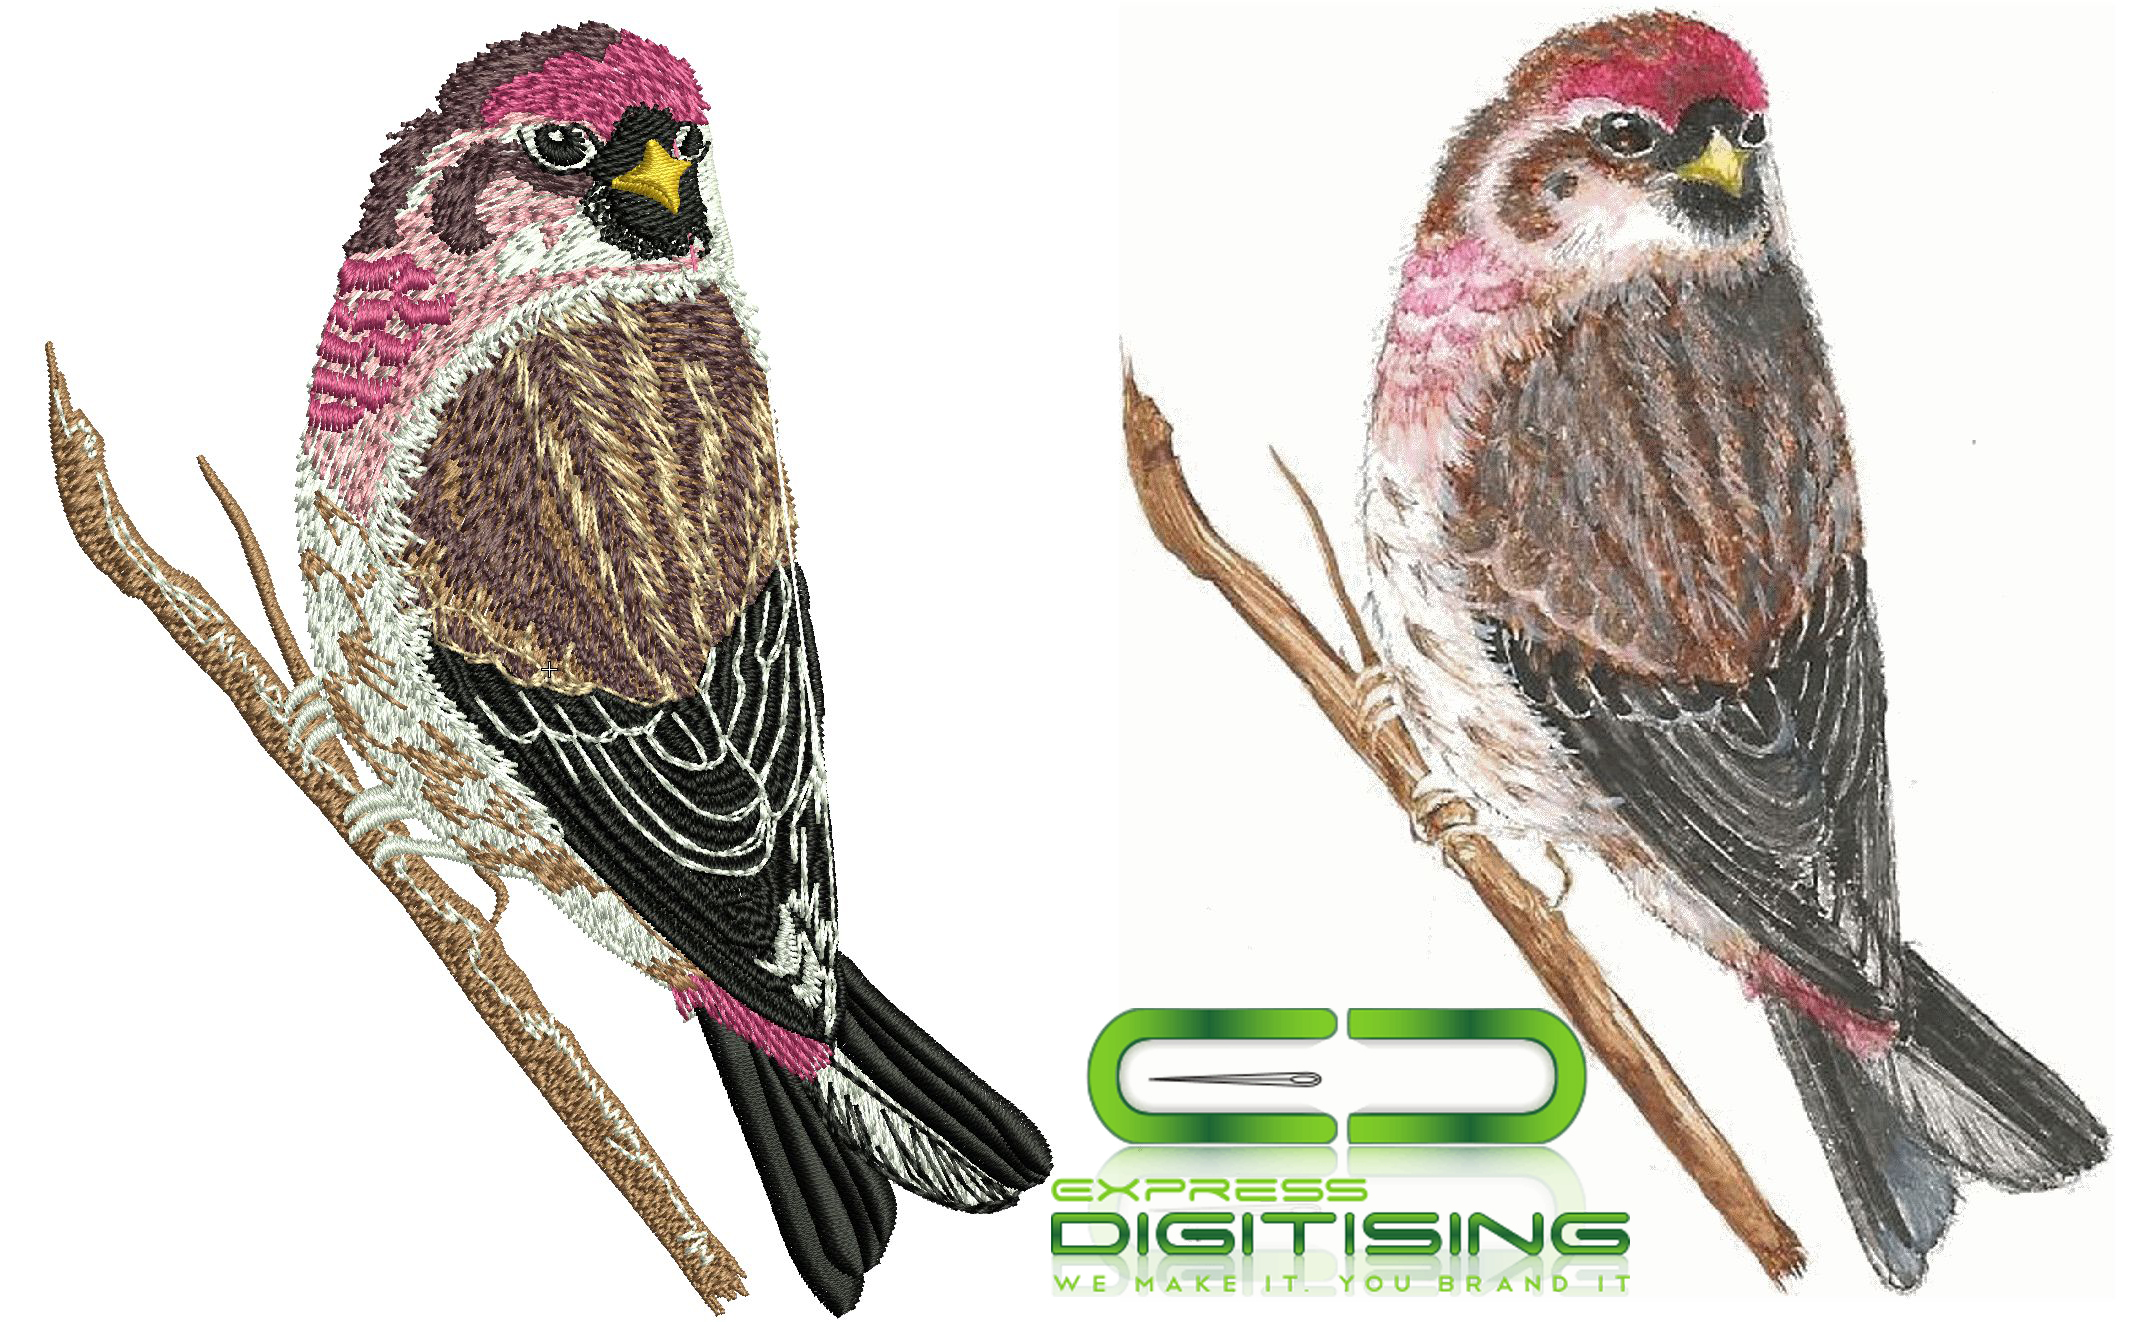 Embroidery Digitizing or Embroidery Digitizer in USA?